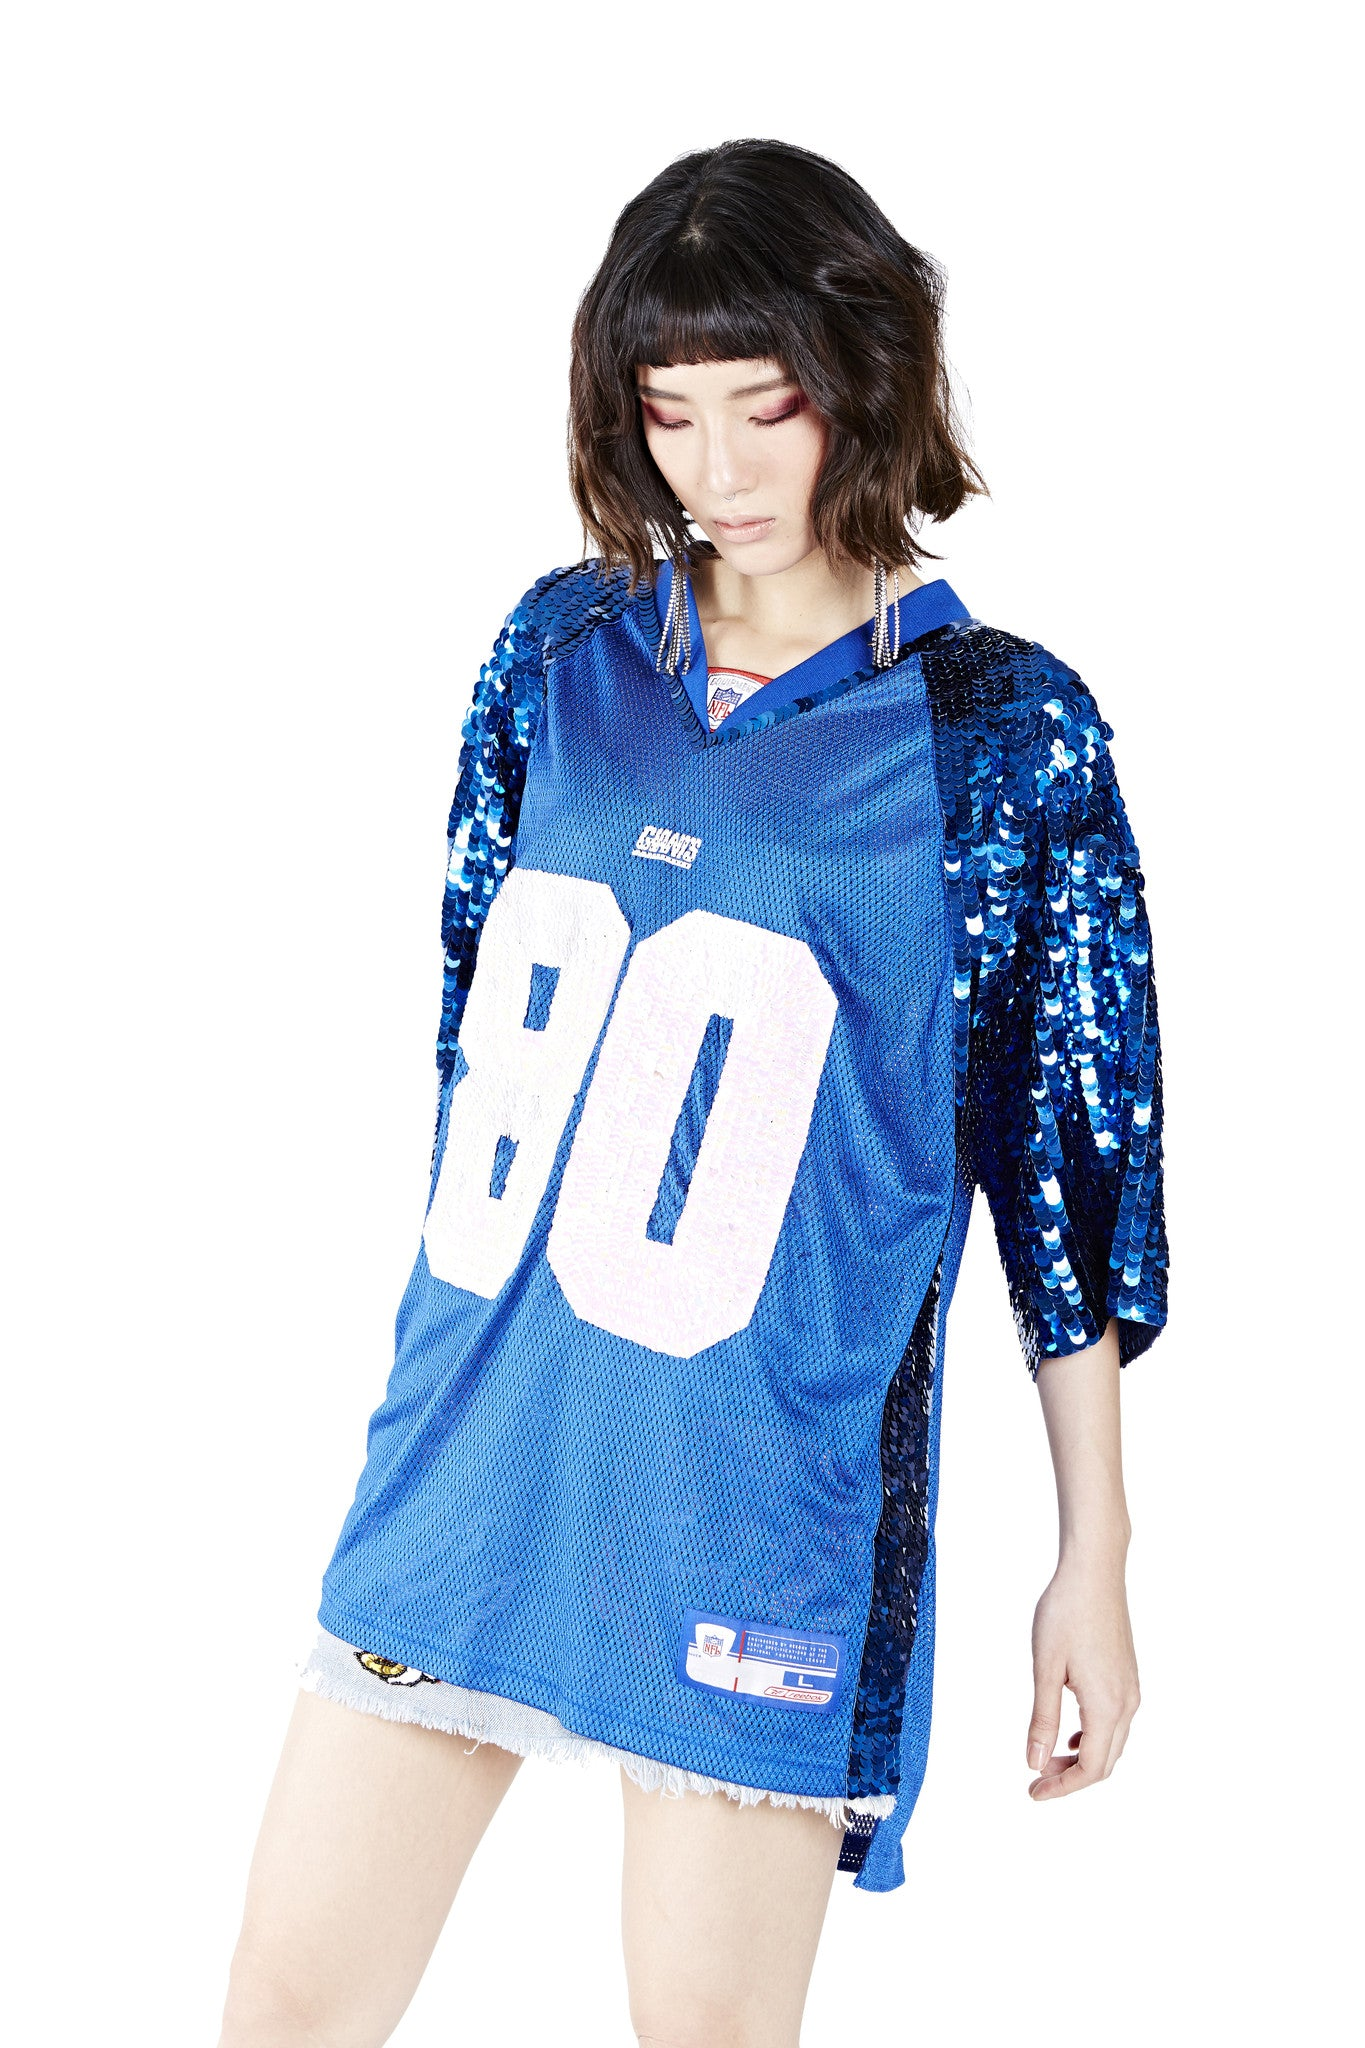 New York Giants '80' Football Jersey